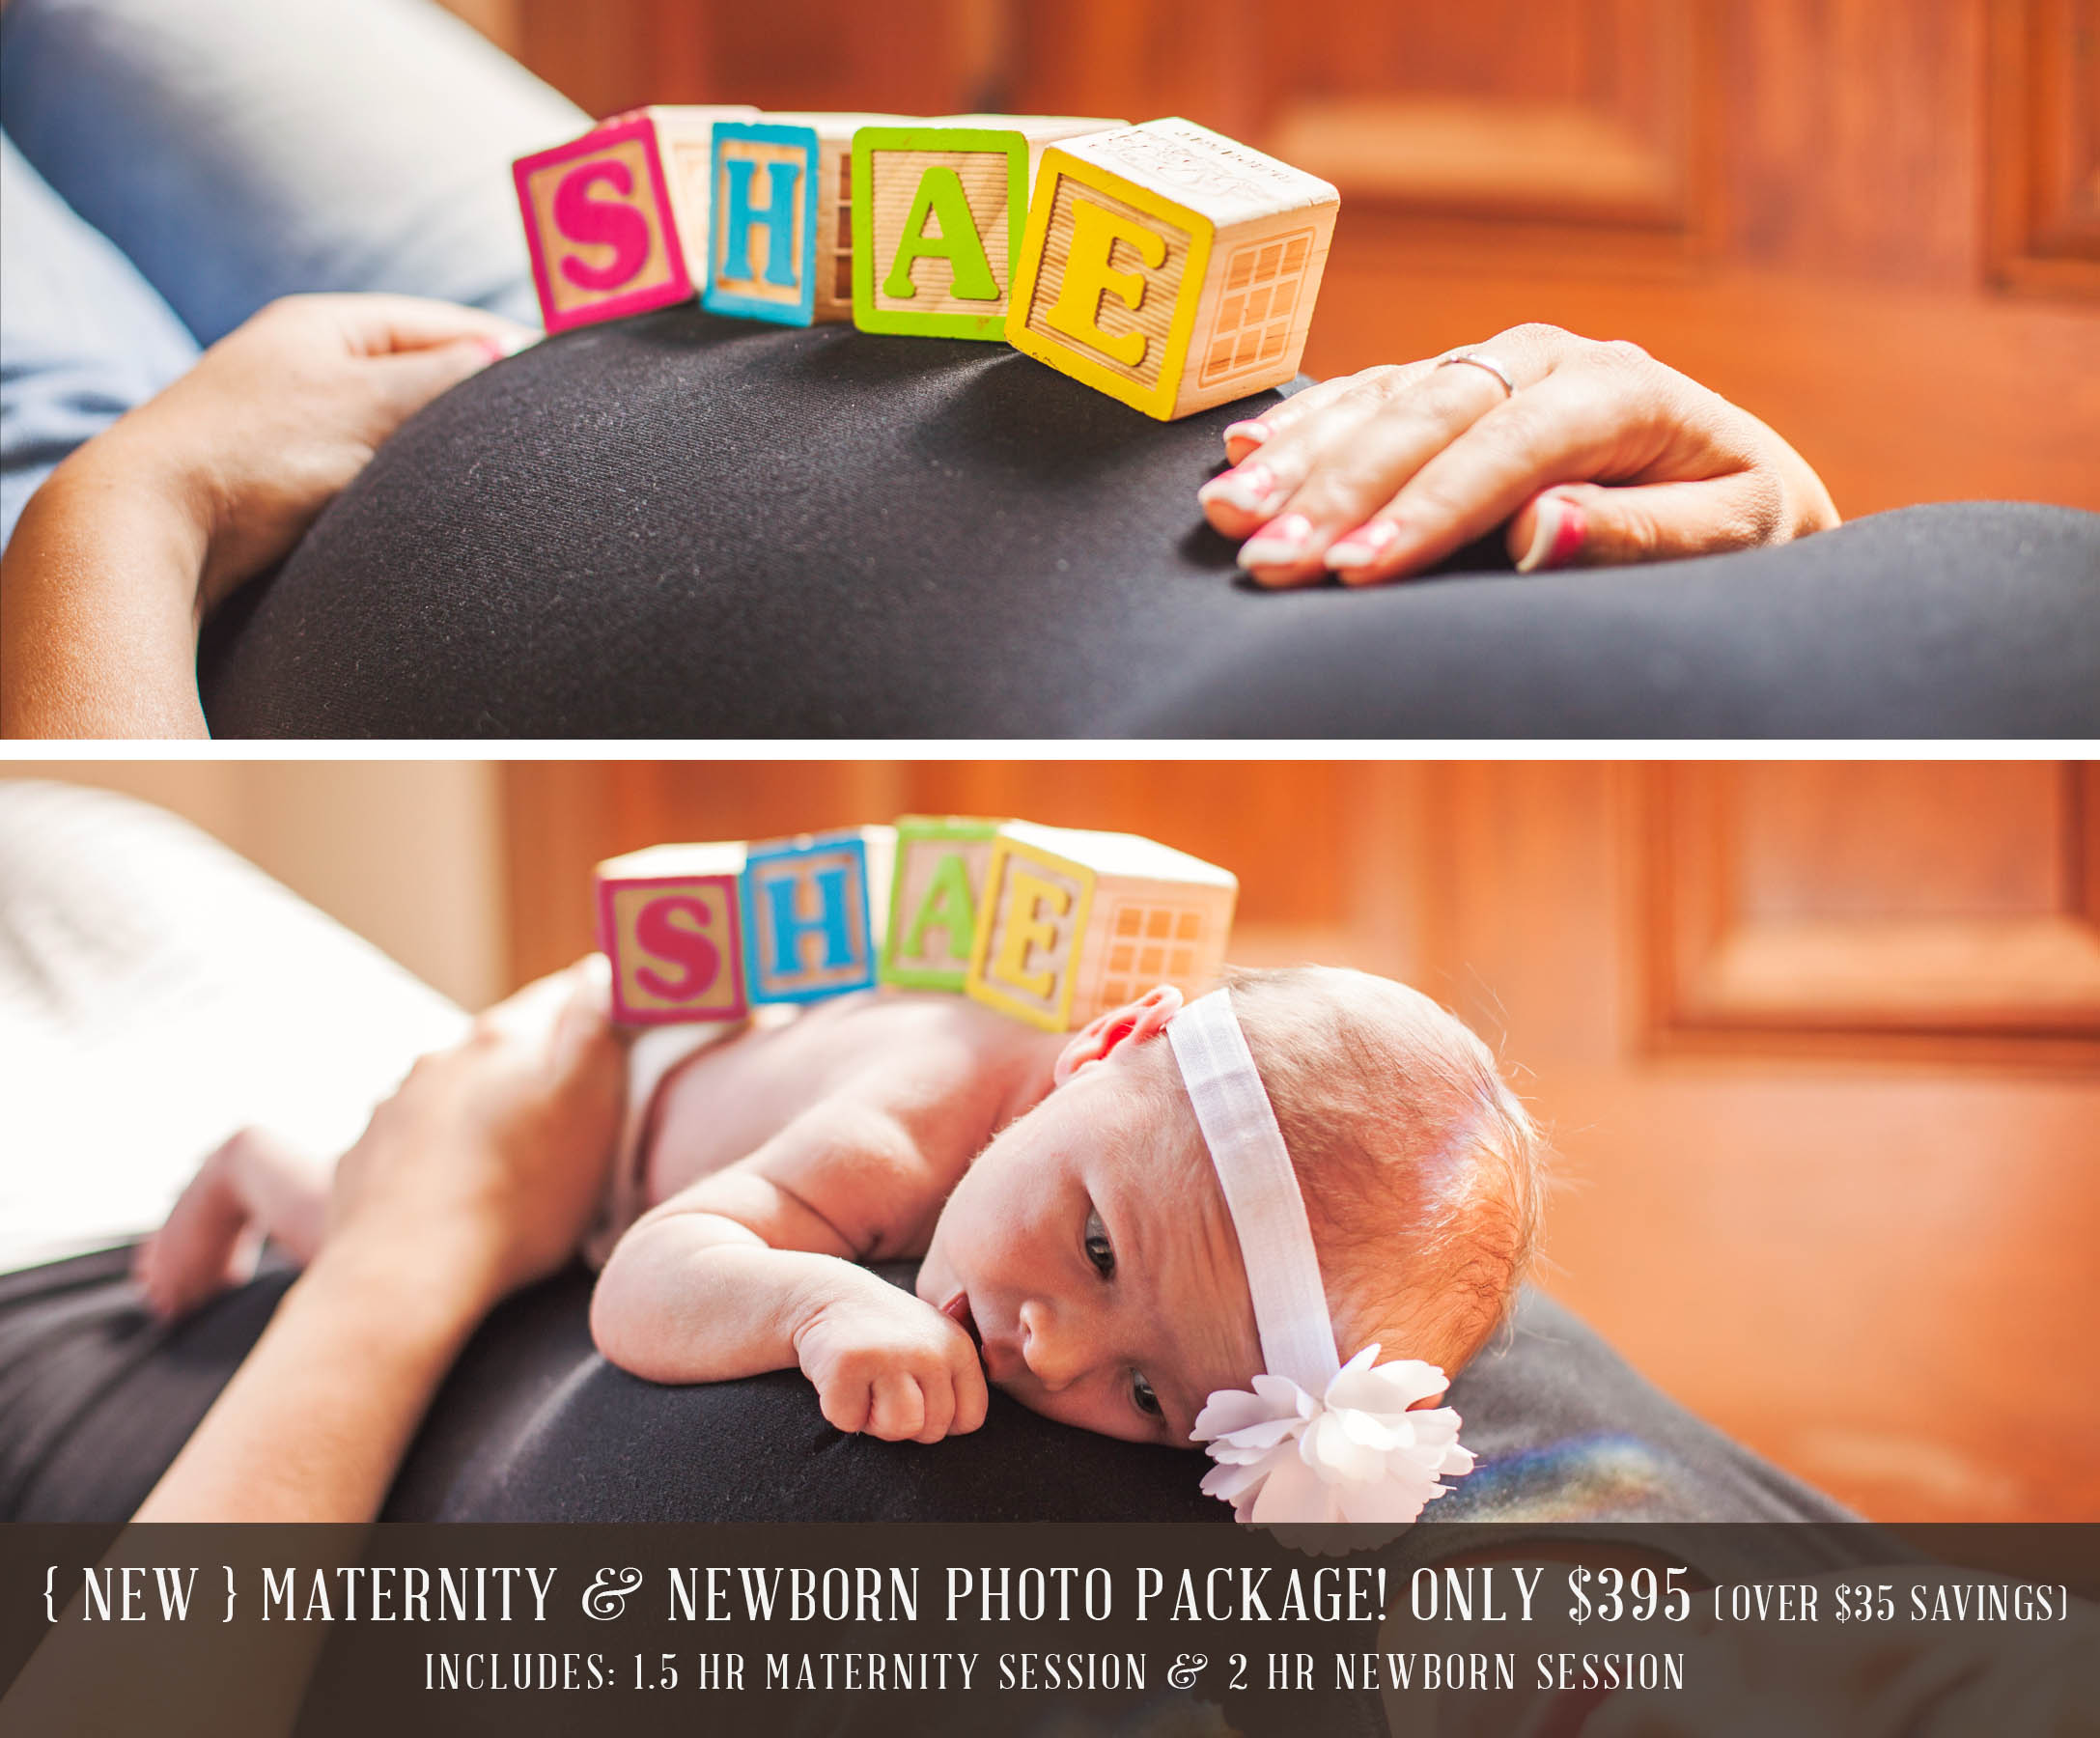 Maternity-NewbornPhotoPackage.jpg